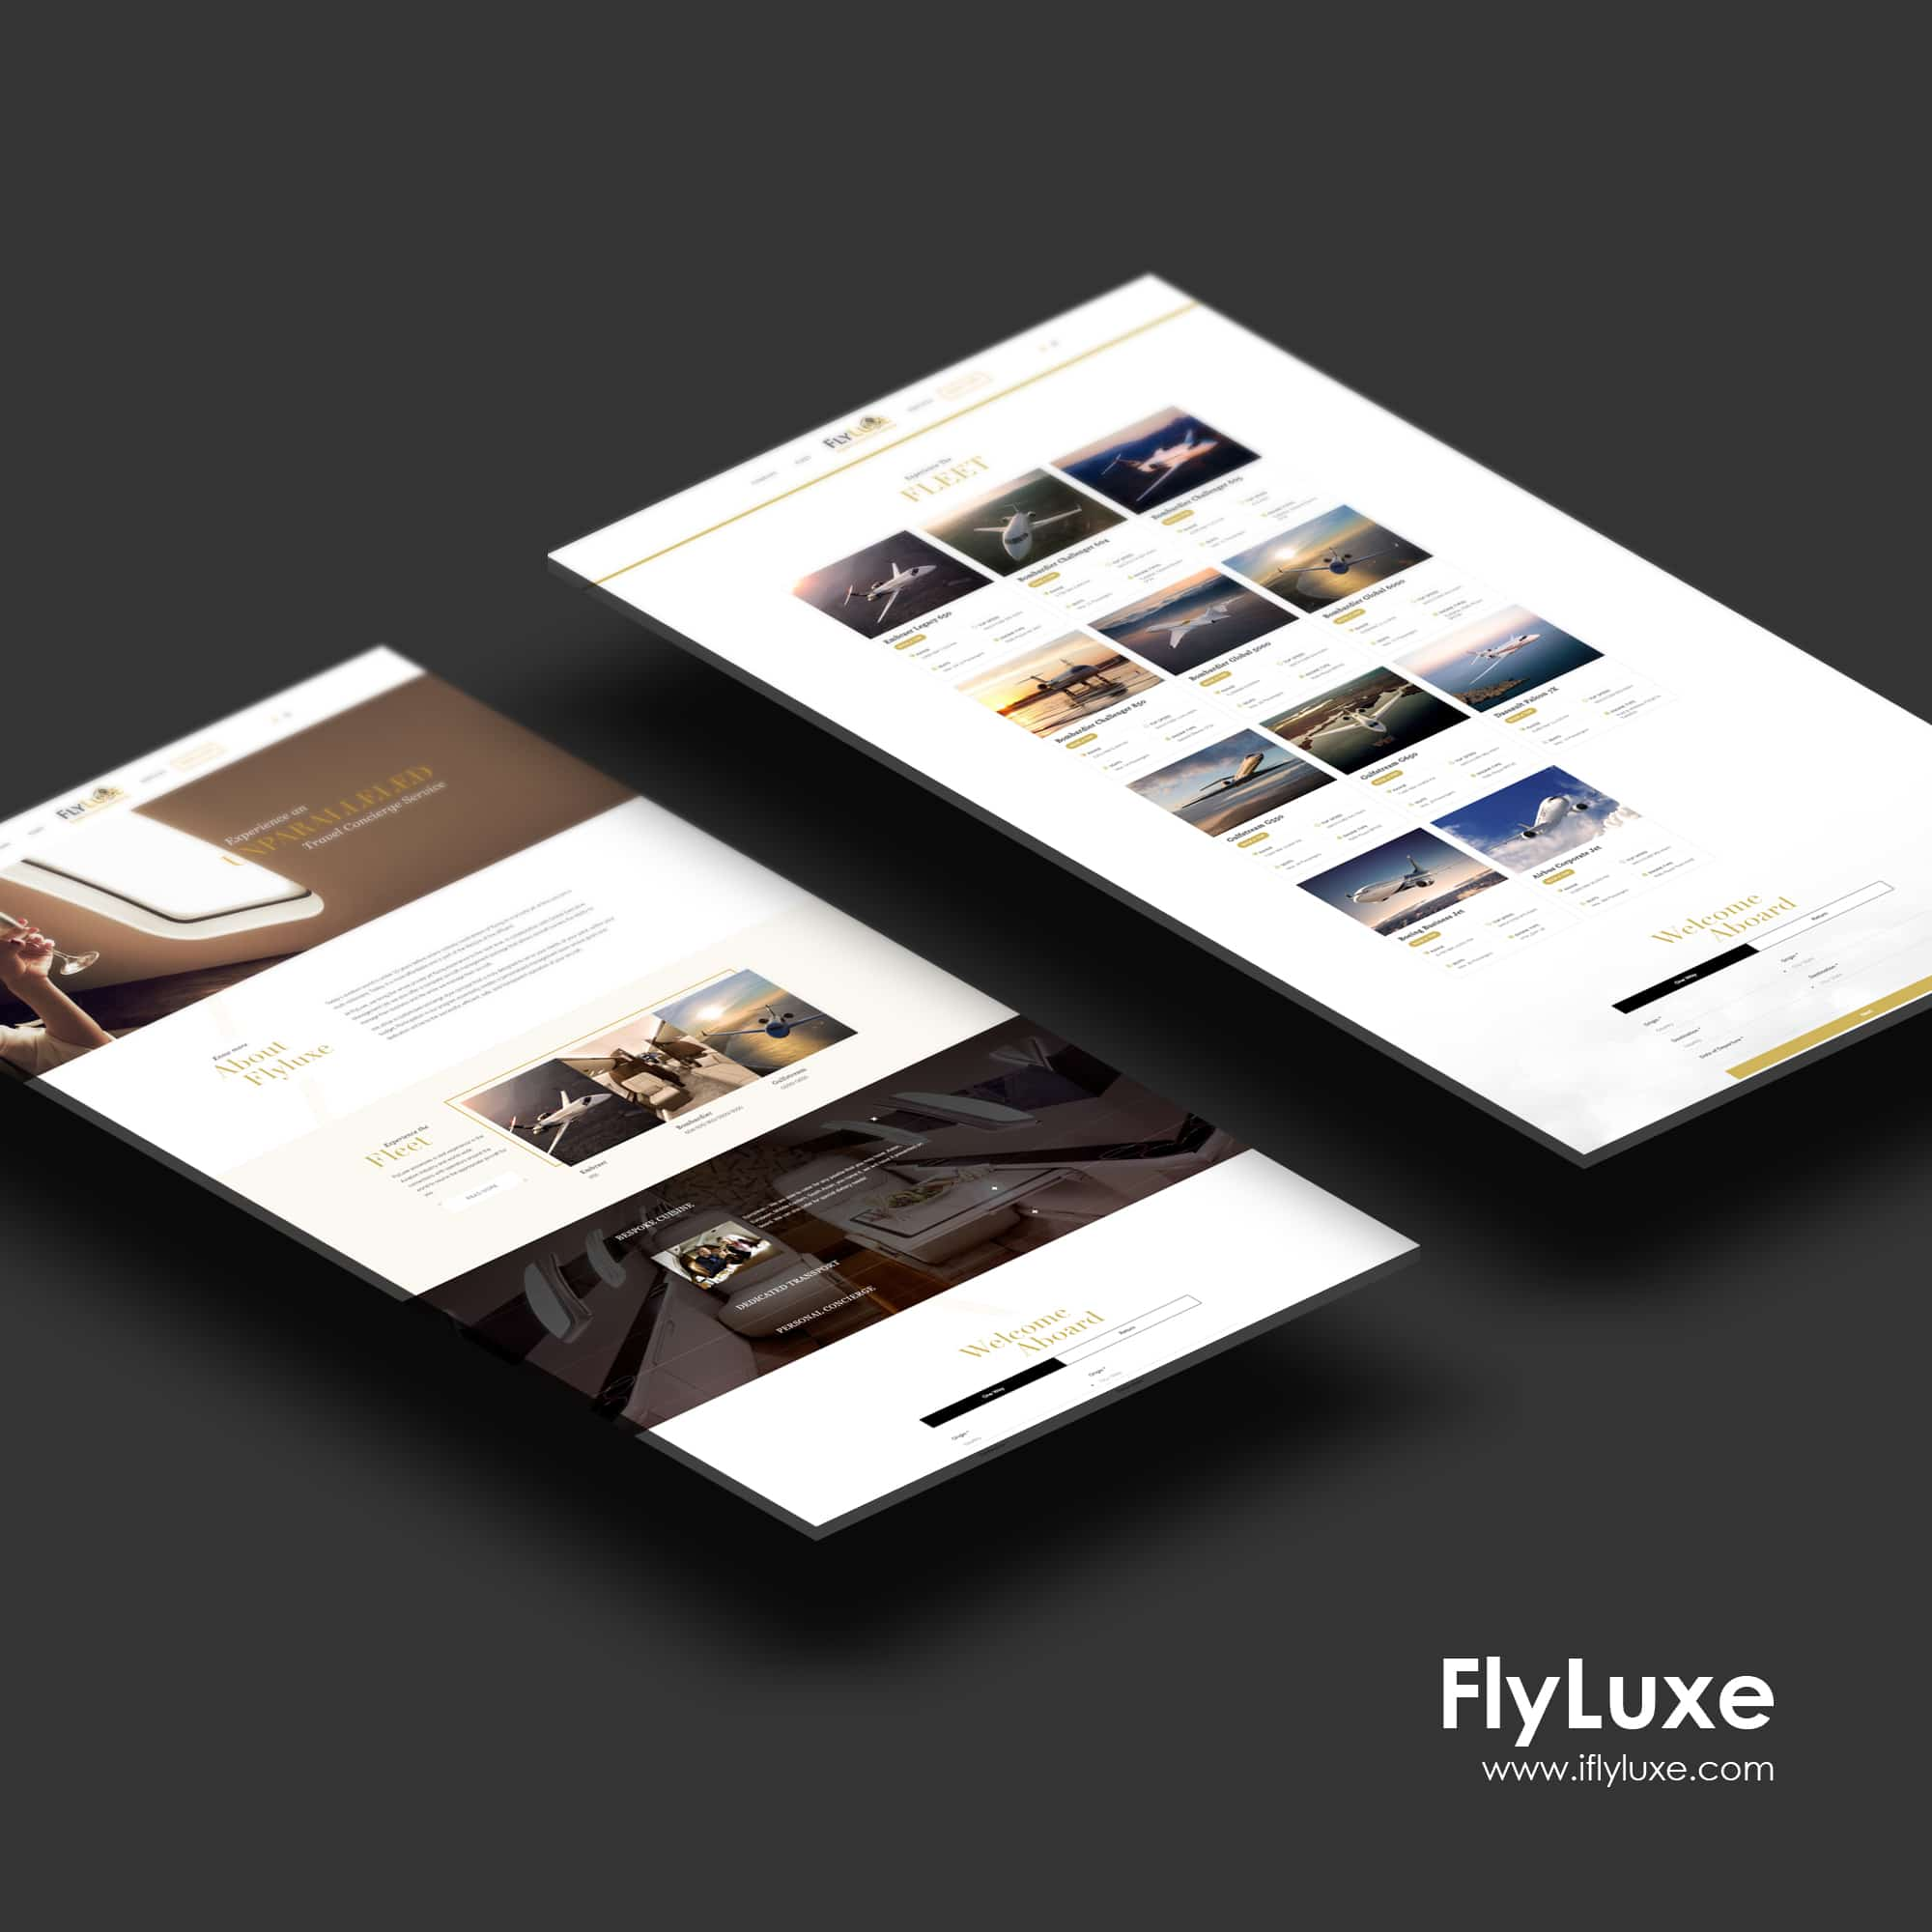 Singapore best web design flyluxe web design